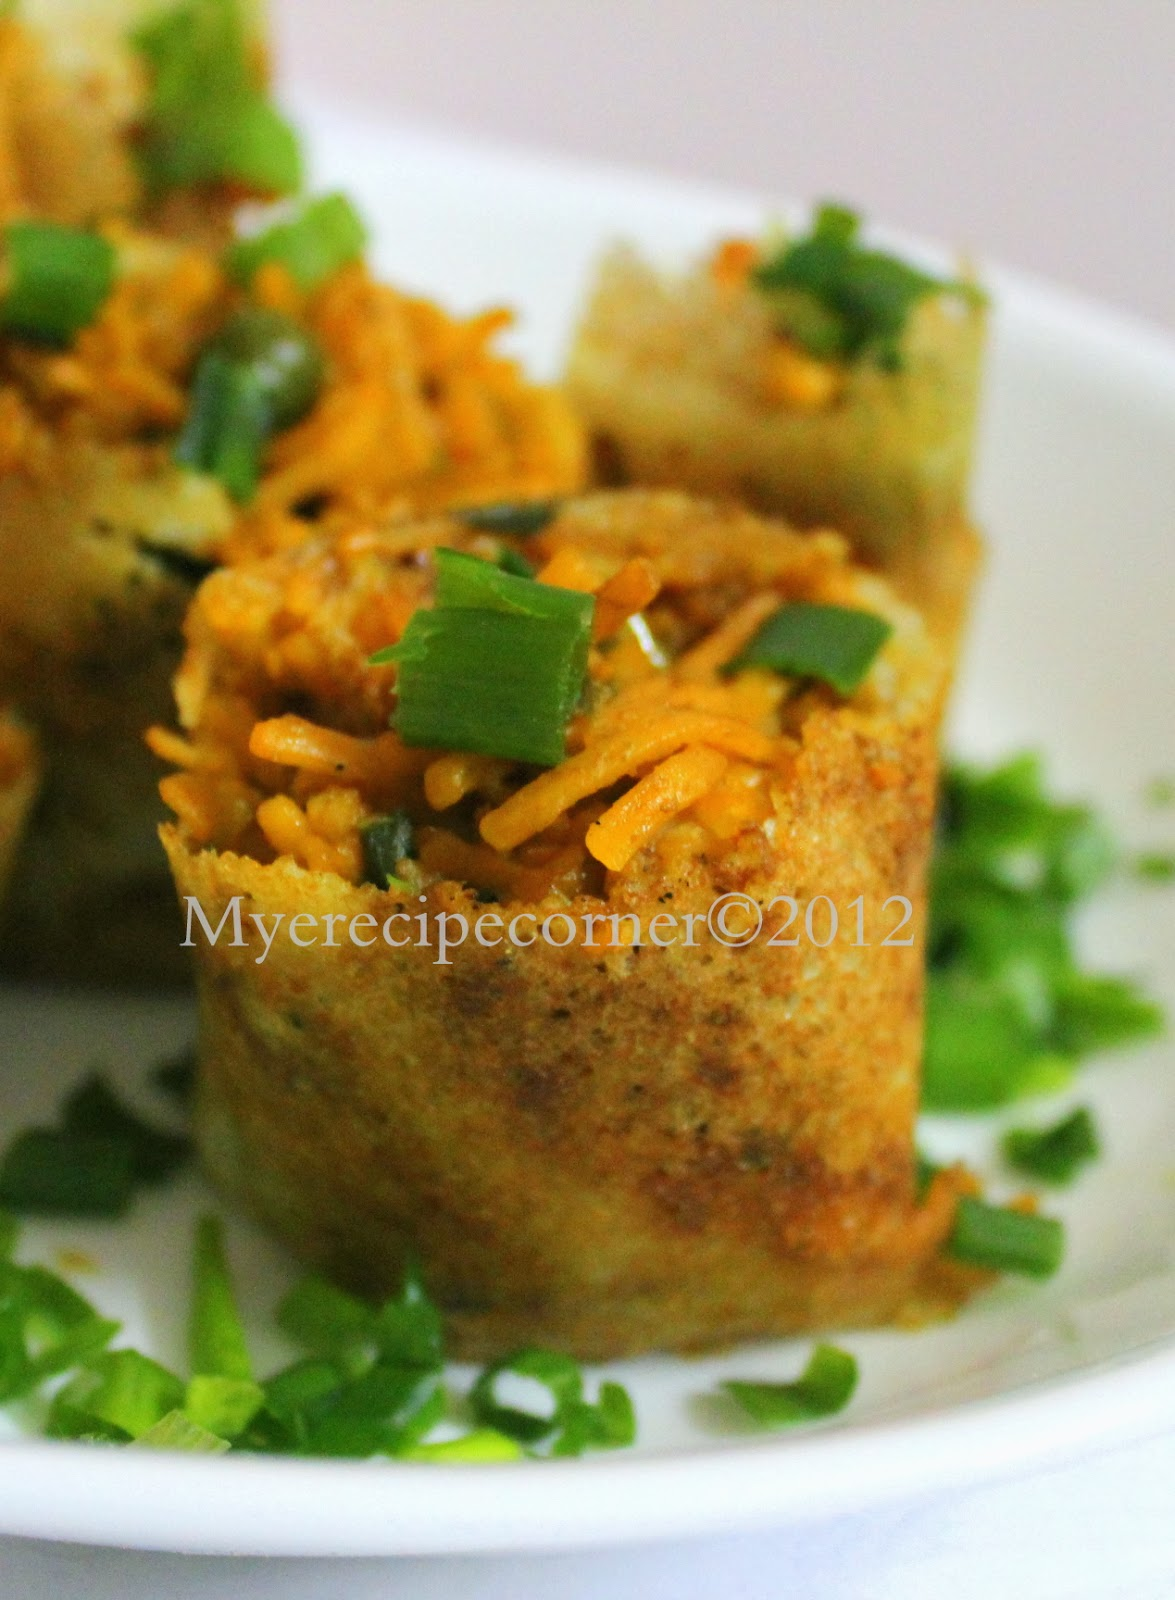 Myes kitchen spring roll dosa kids lunch box recipes indian spring roll dosa kids lunch box recipes indian forumfinder Images